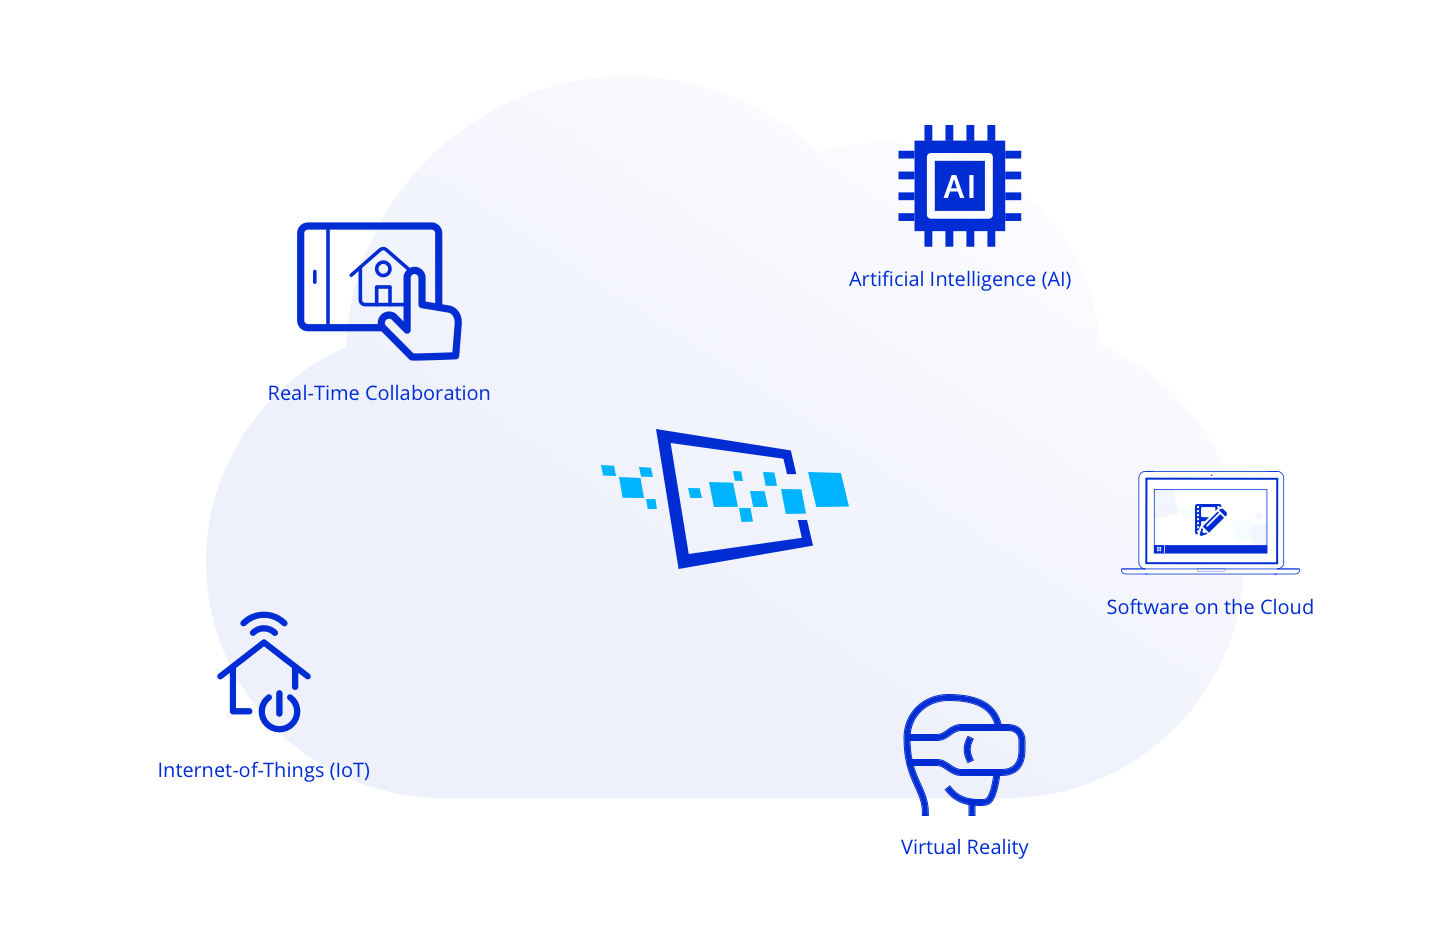 Cloudalize's GPU-powered Platform enables IoT, software in the Cloud, Artificial Intelligence (AI), mobility and flexibility.